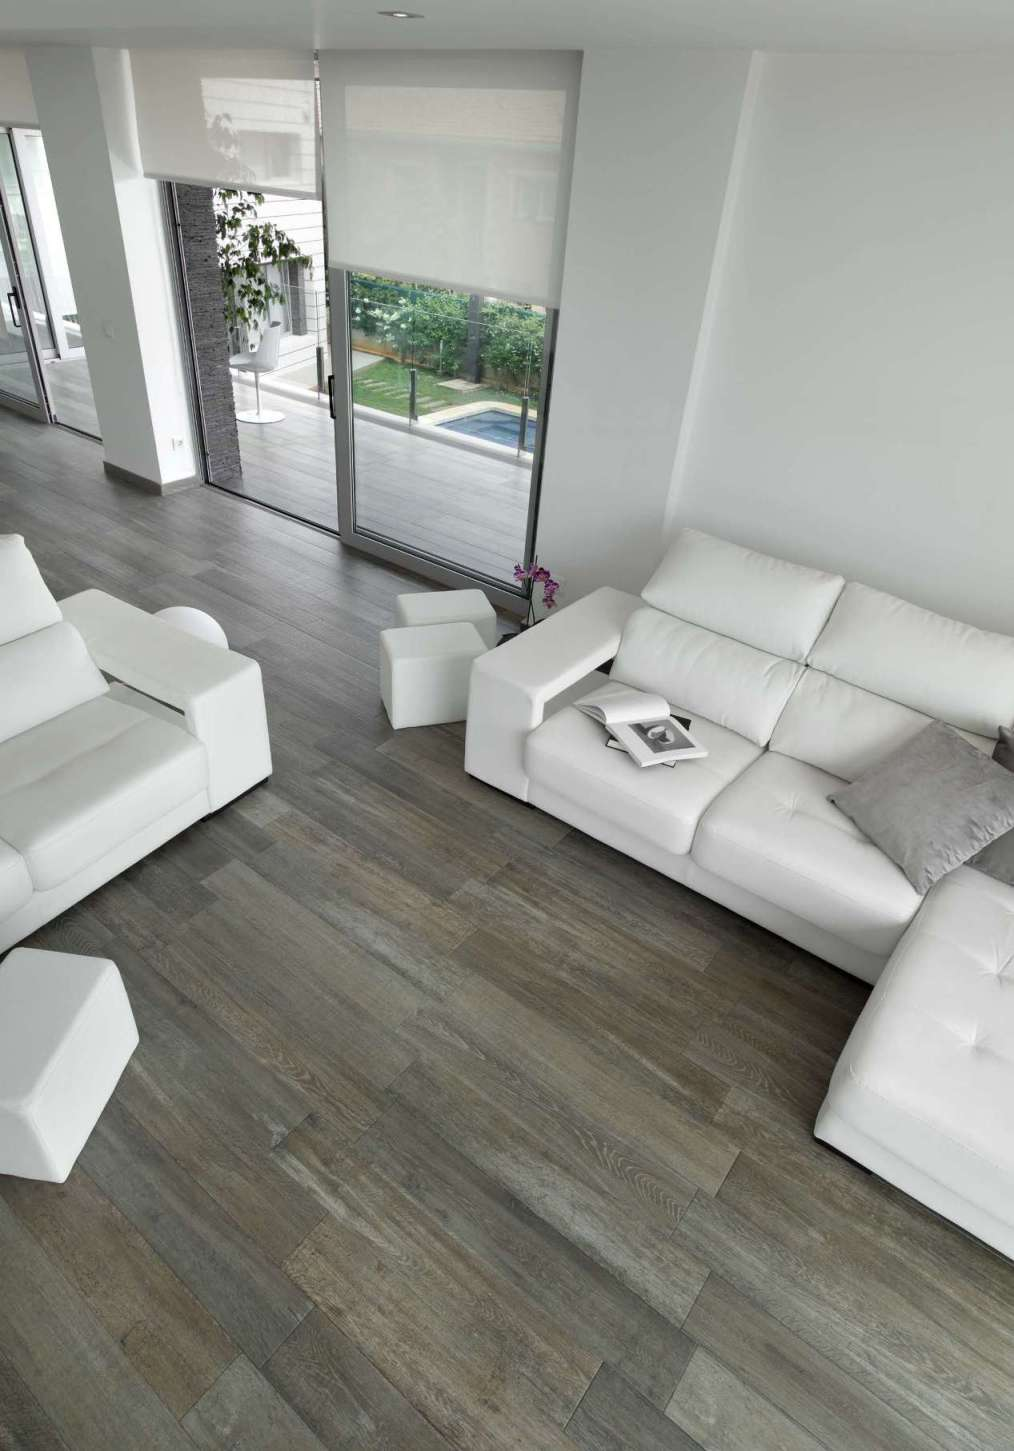 Sydney Timber Look Tiles Floor Porcelain Wood Tile Showroom